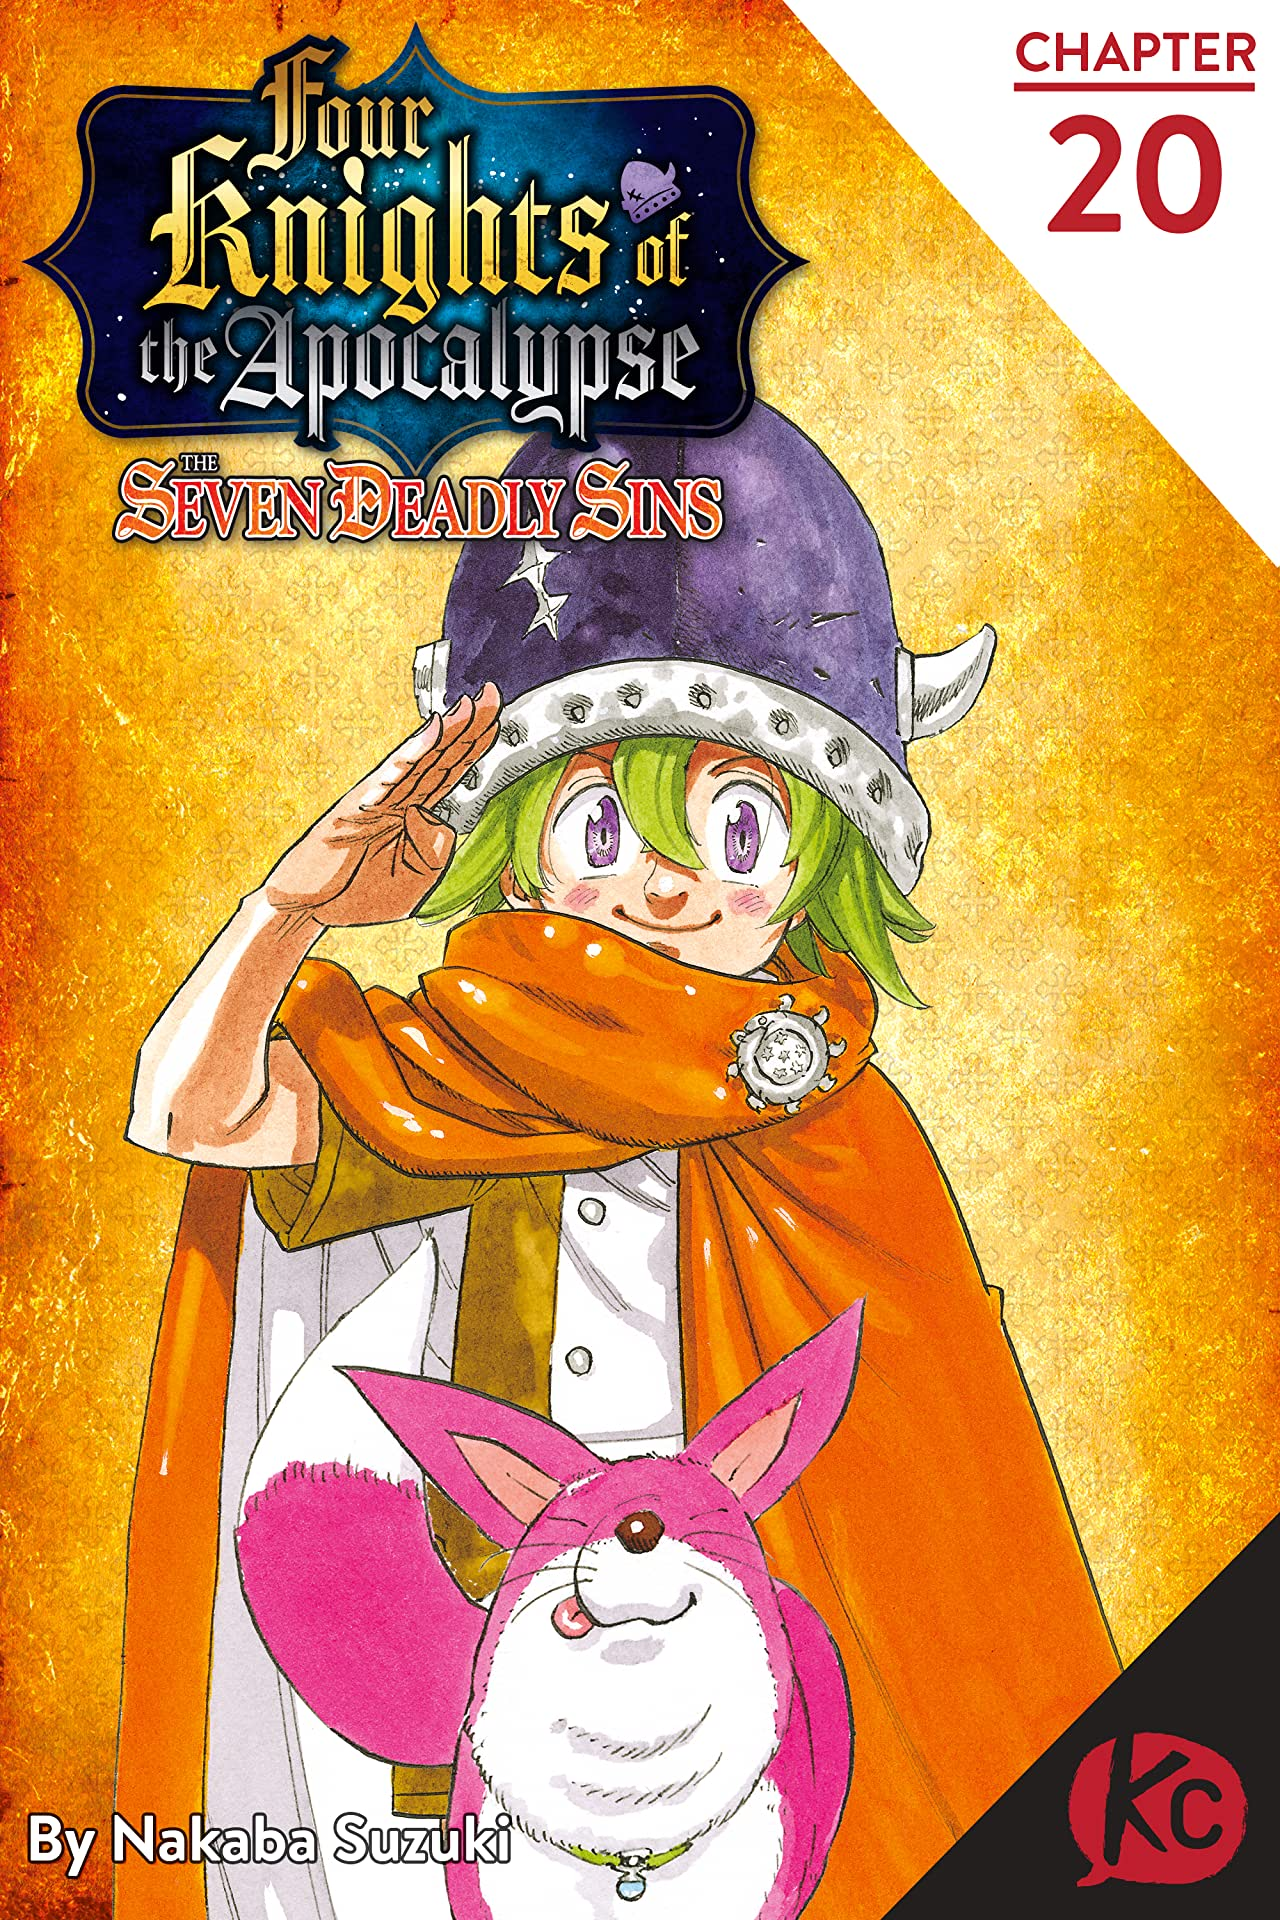 The Seven Deadly Sins: Four Knights of the Apocalypse #20